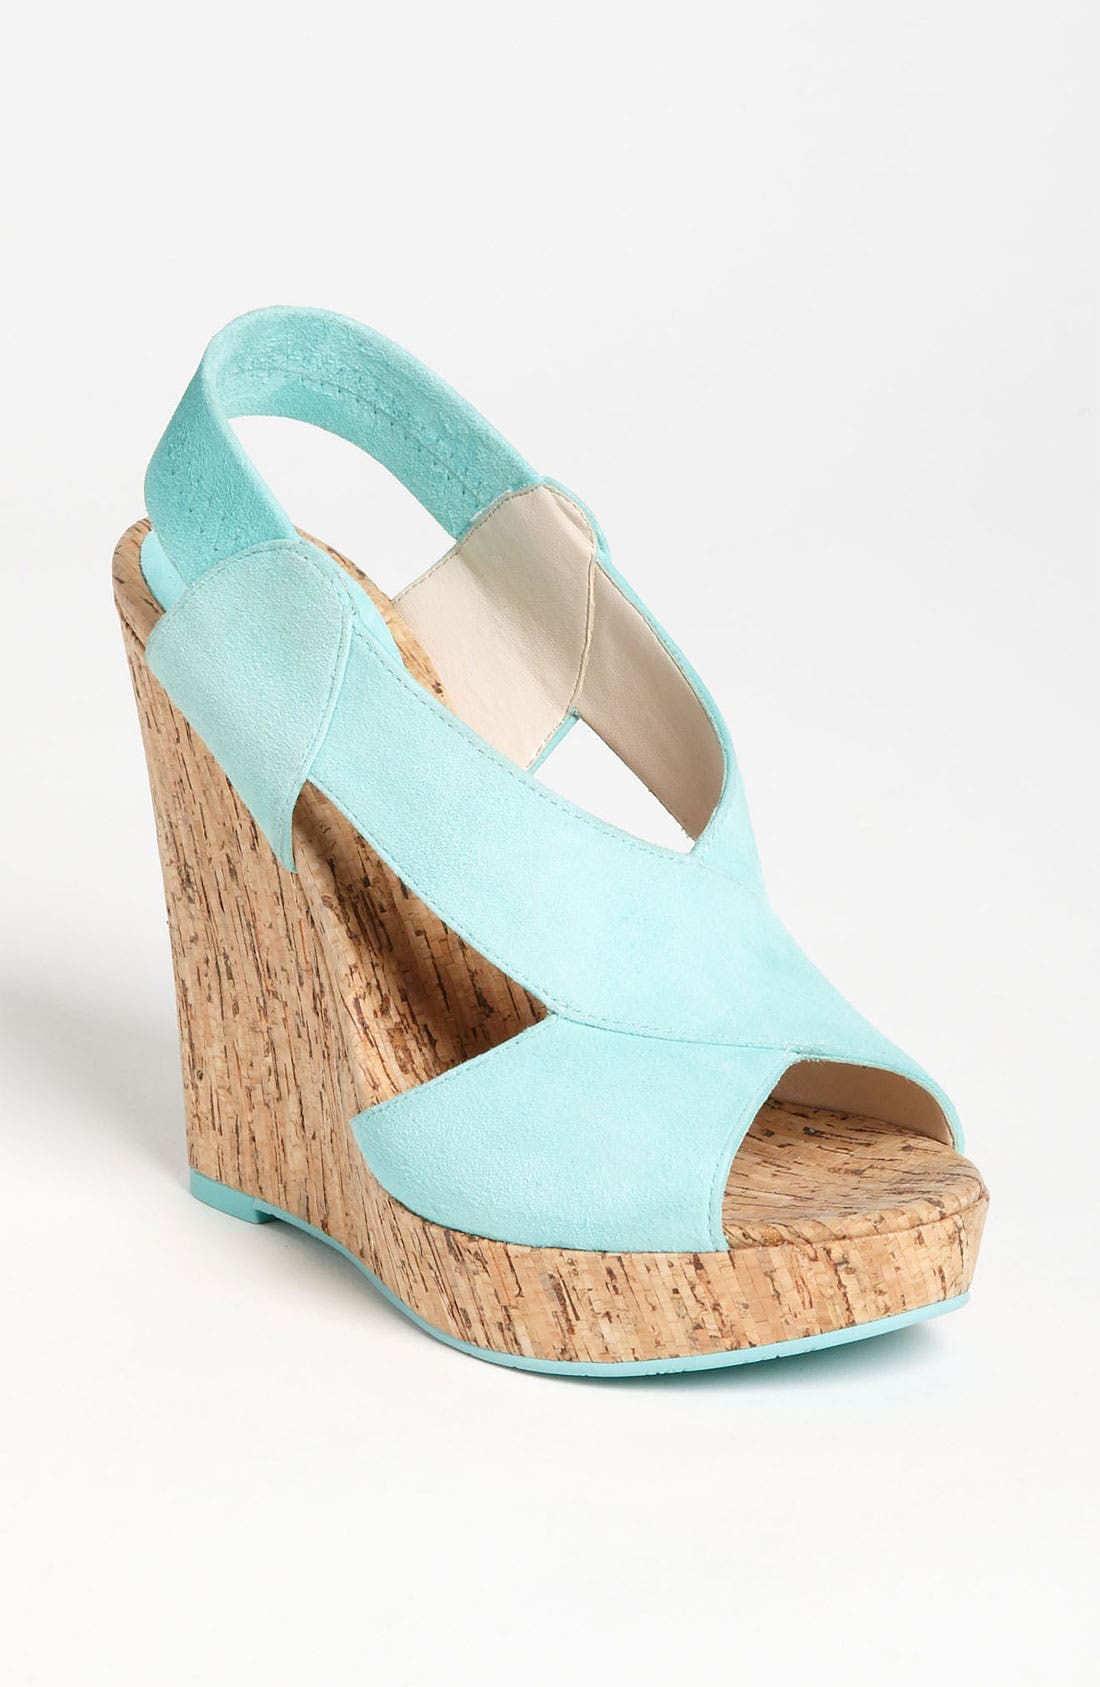 Alternate Image 1 Selected - Pelle Moda 'Dana' Wedge Sandal